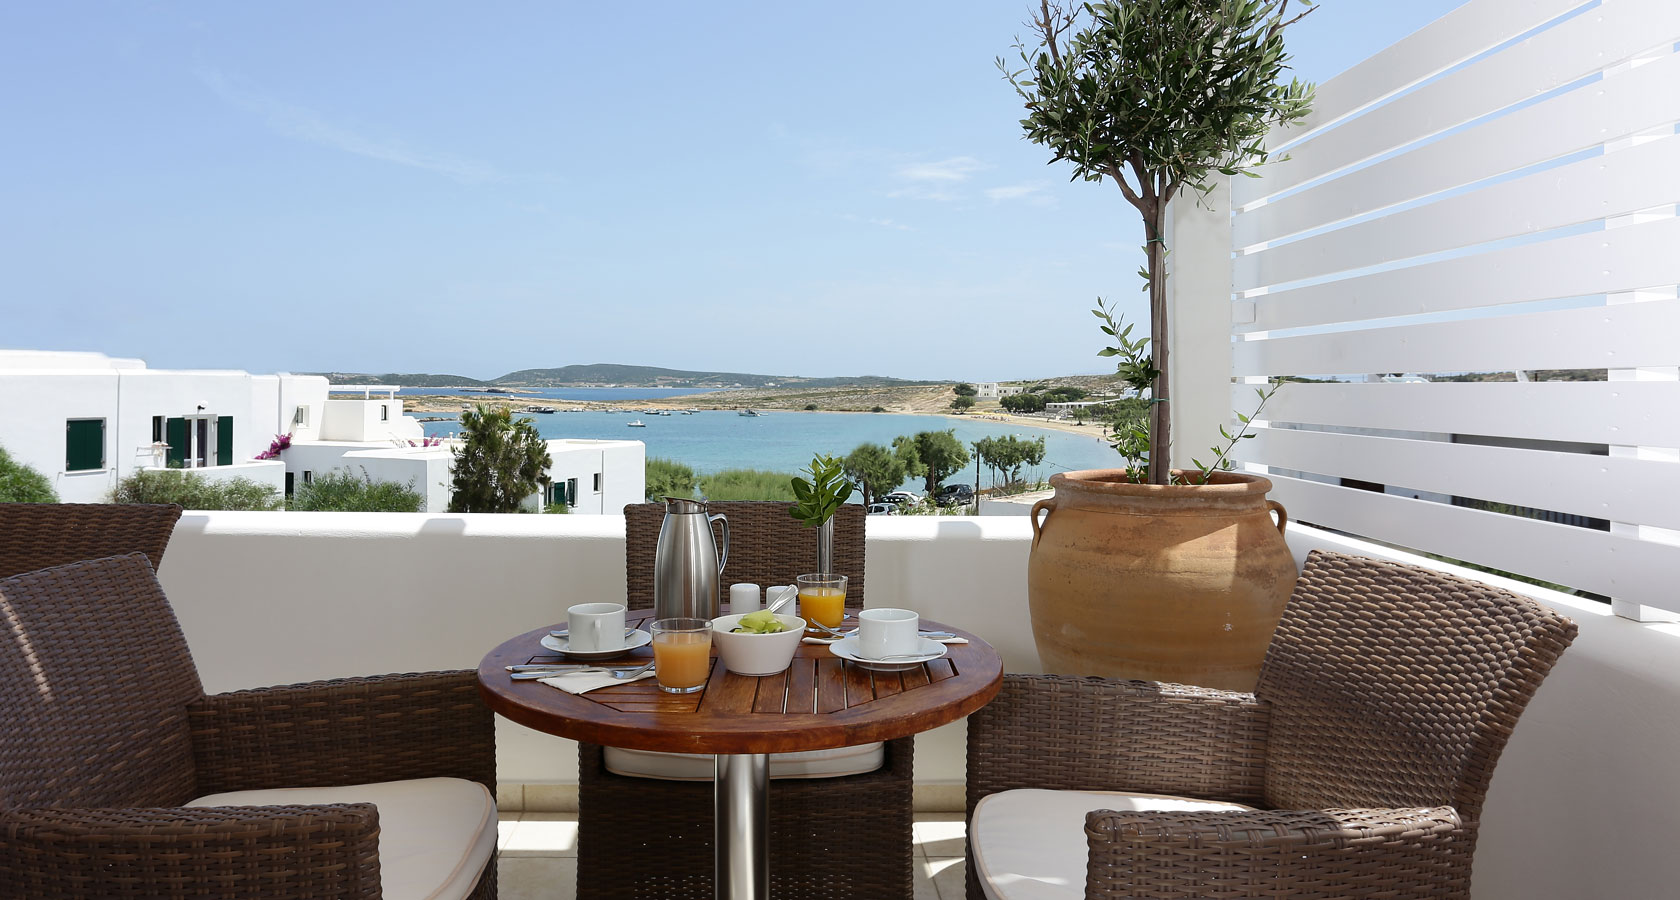 Stelia Mare sea view hotel in Naoussa, Paros Greece